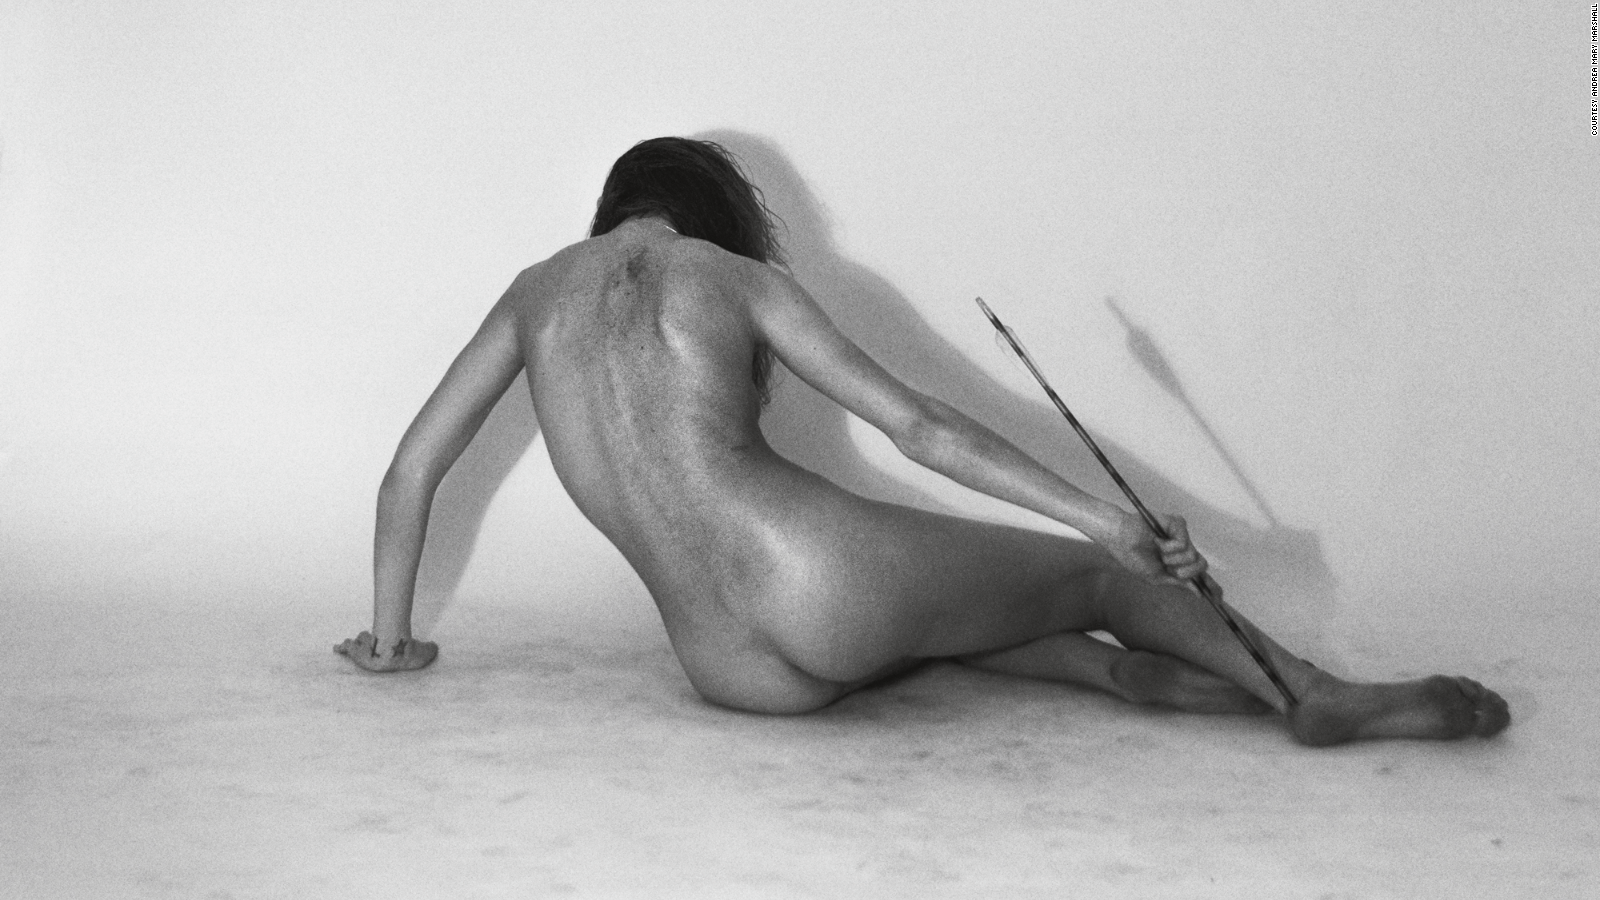 Andrea C Nude Pics how greek and roman mythology inspires great artists - cnn style